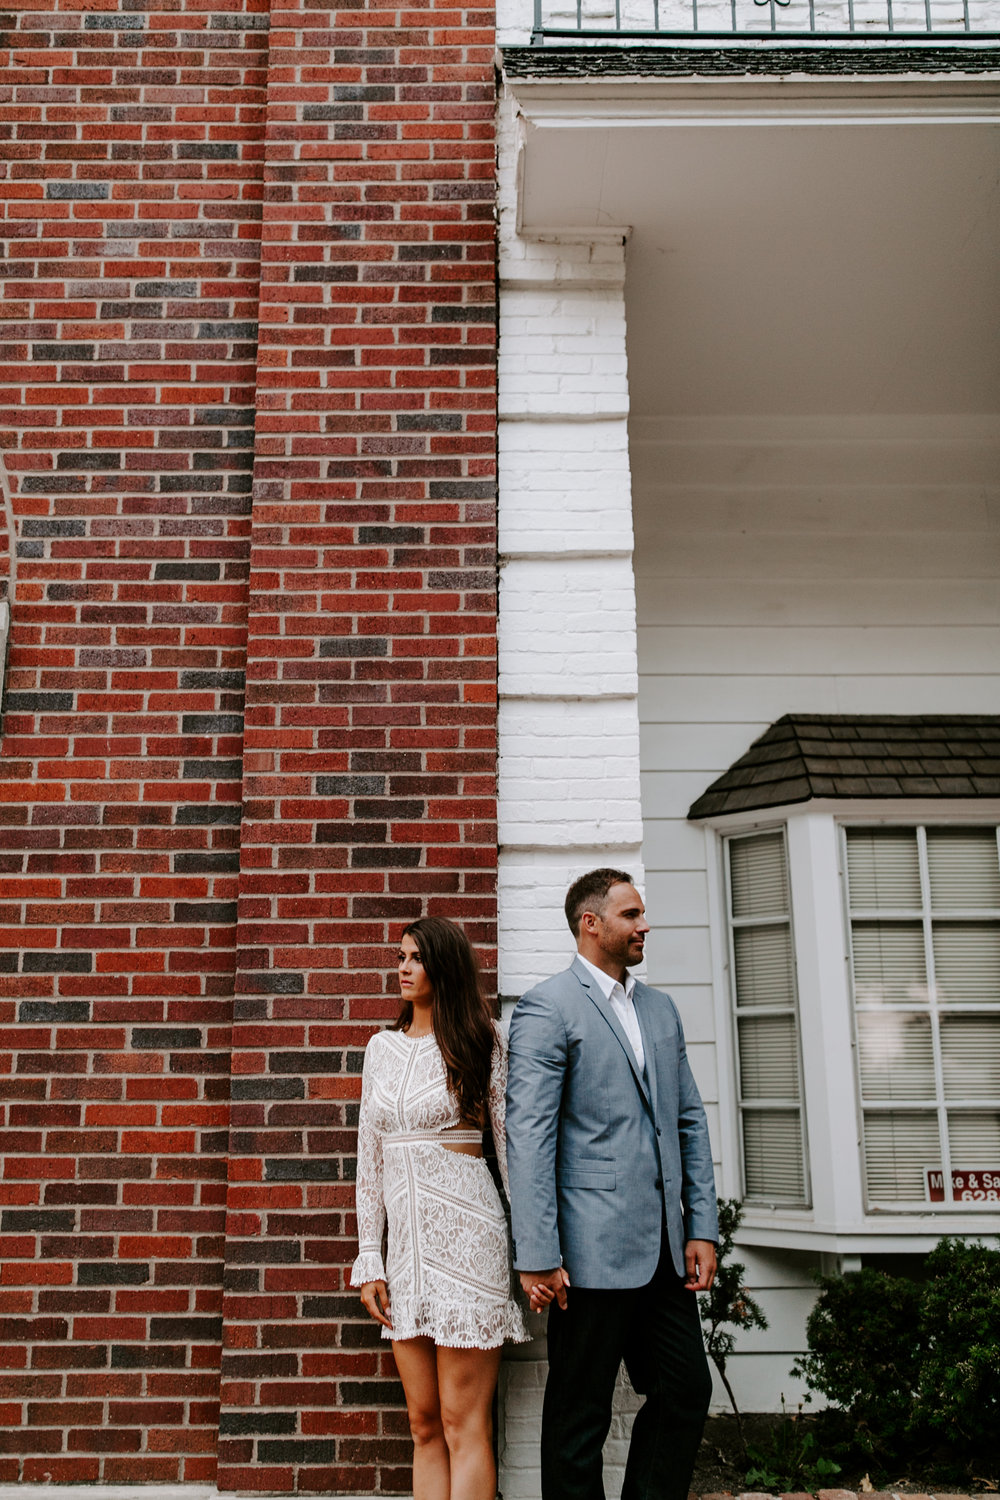 gracetphotography-adventure-session-des-moines-iowa-wedding-photographer-29.jpg